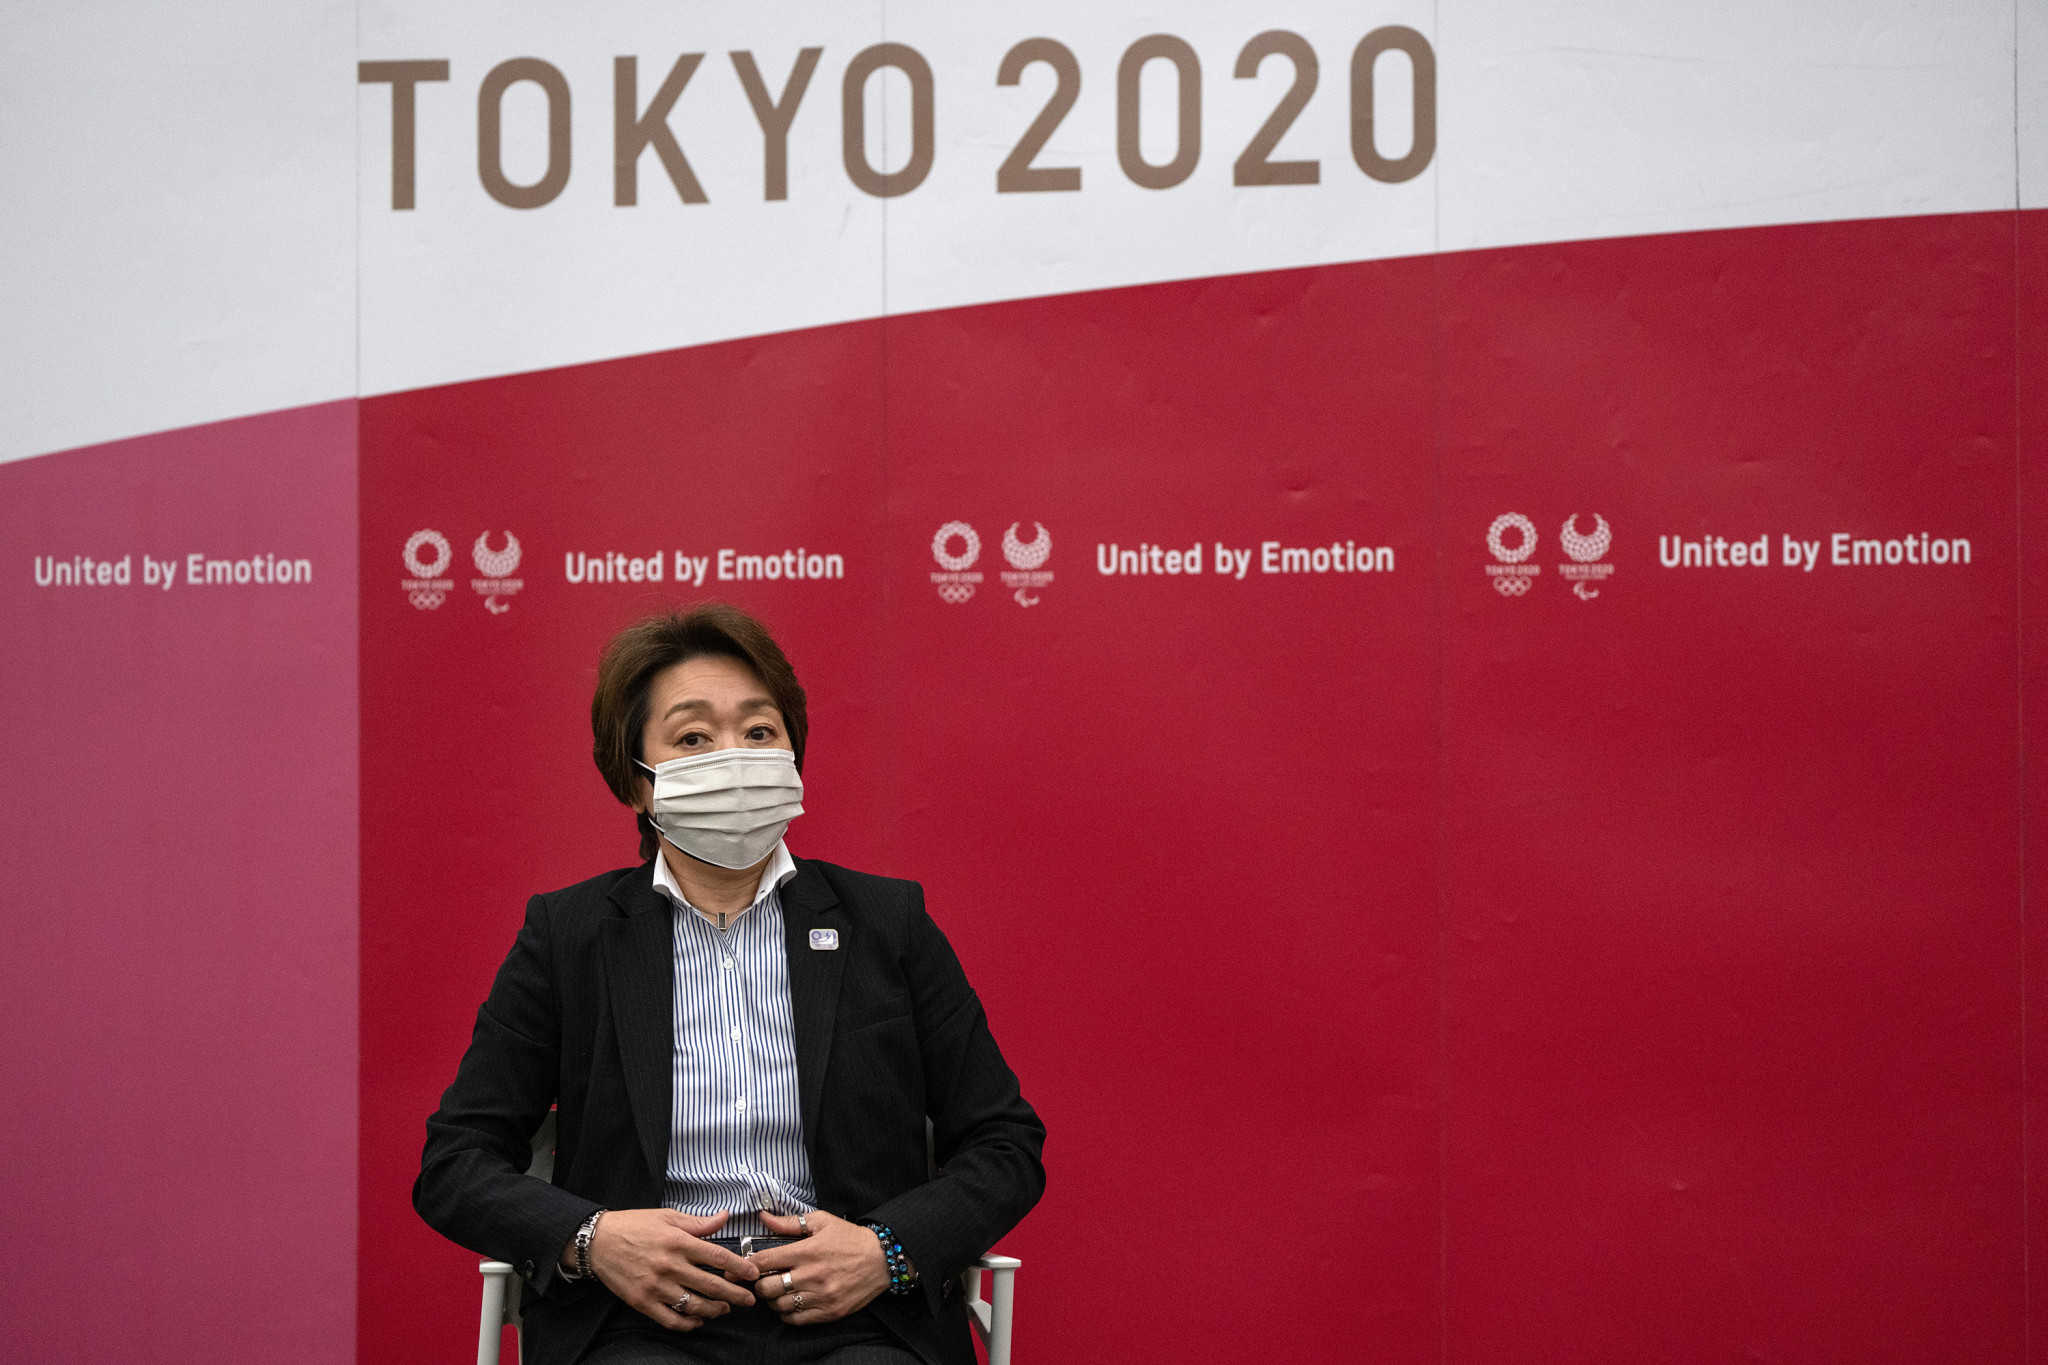 Tokyo 2020 President Seiko Hasimoto said the visit would be difficult amid a state of emergency ©Getty Images